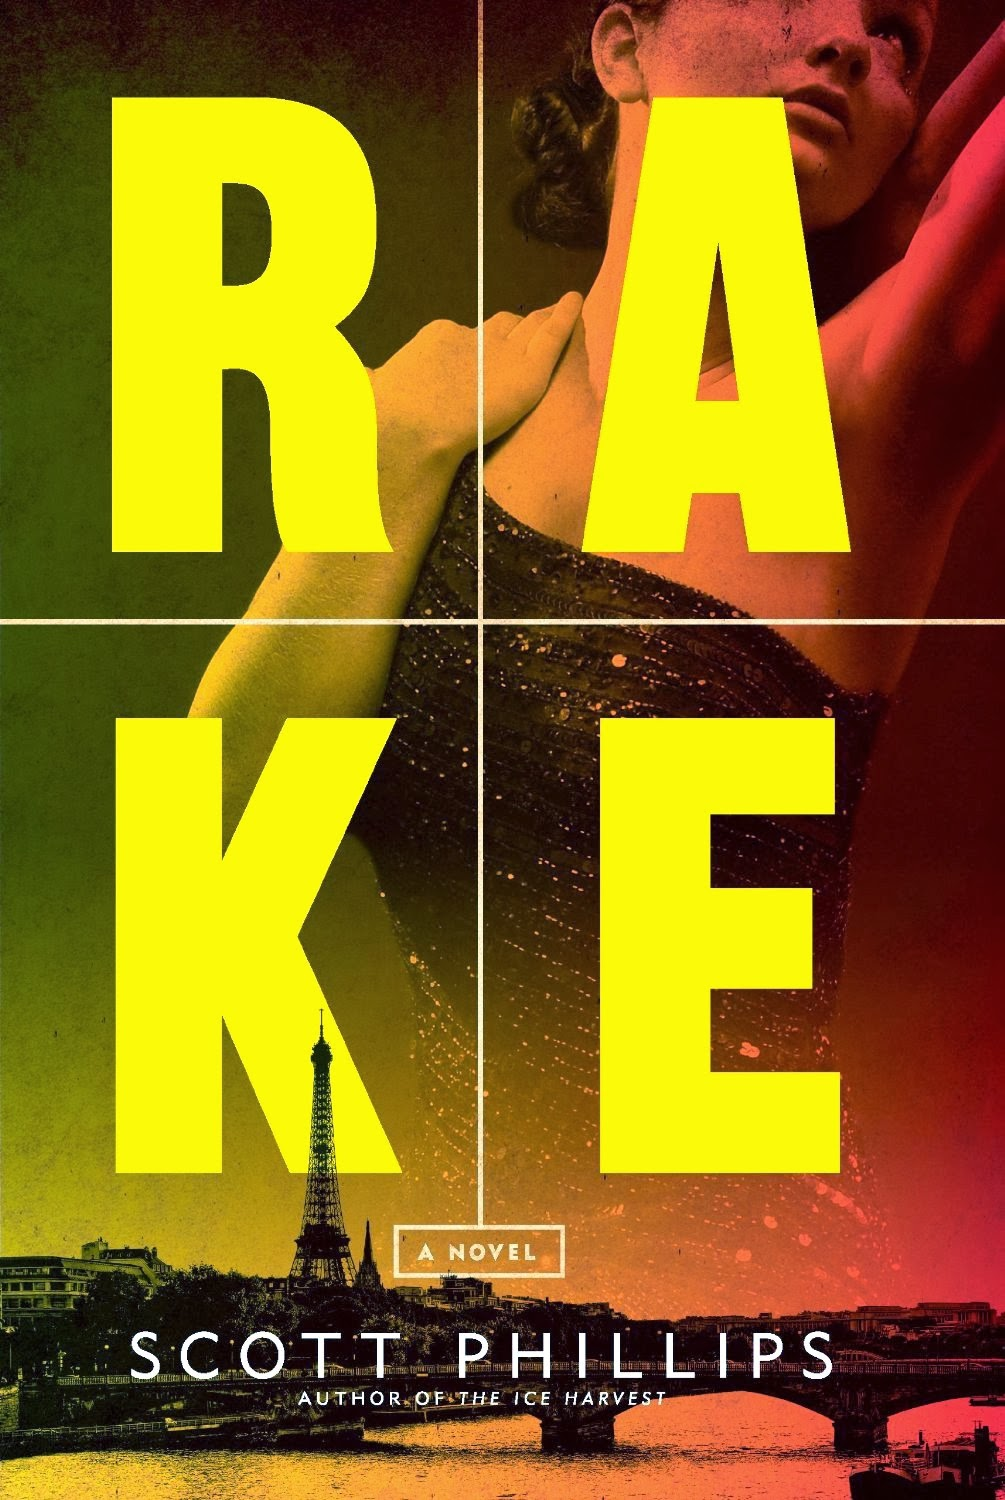 Crime Fiction: <i>Rake</i>&nbsp; by Scott Phillips